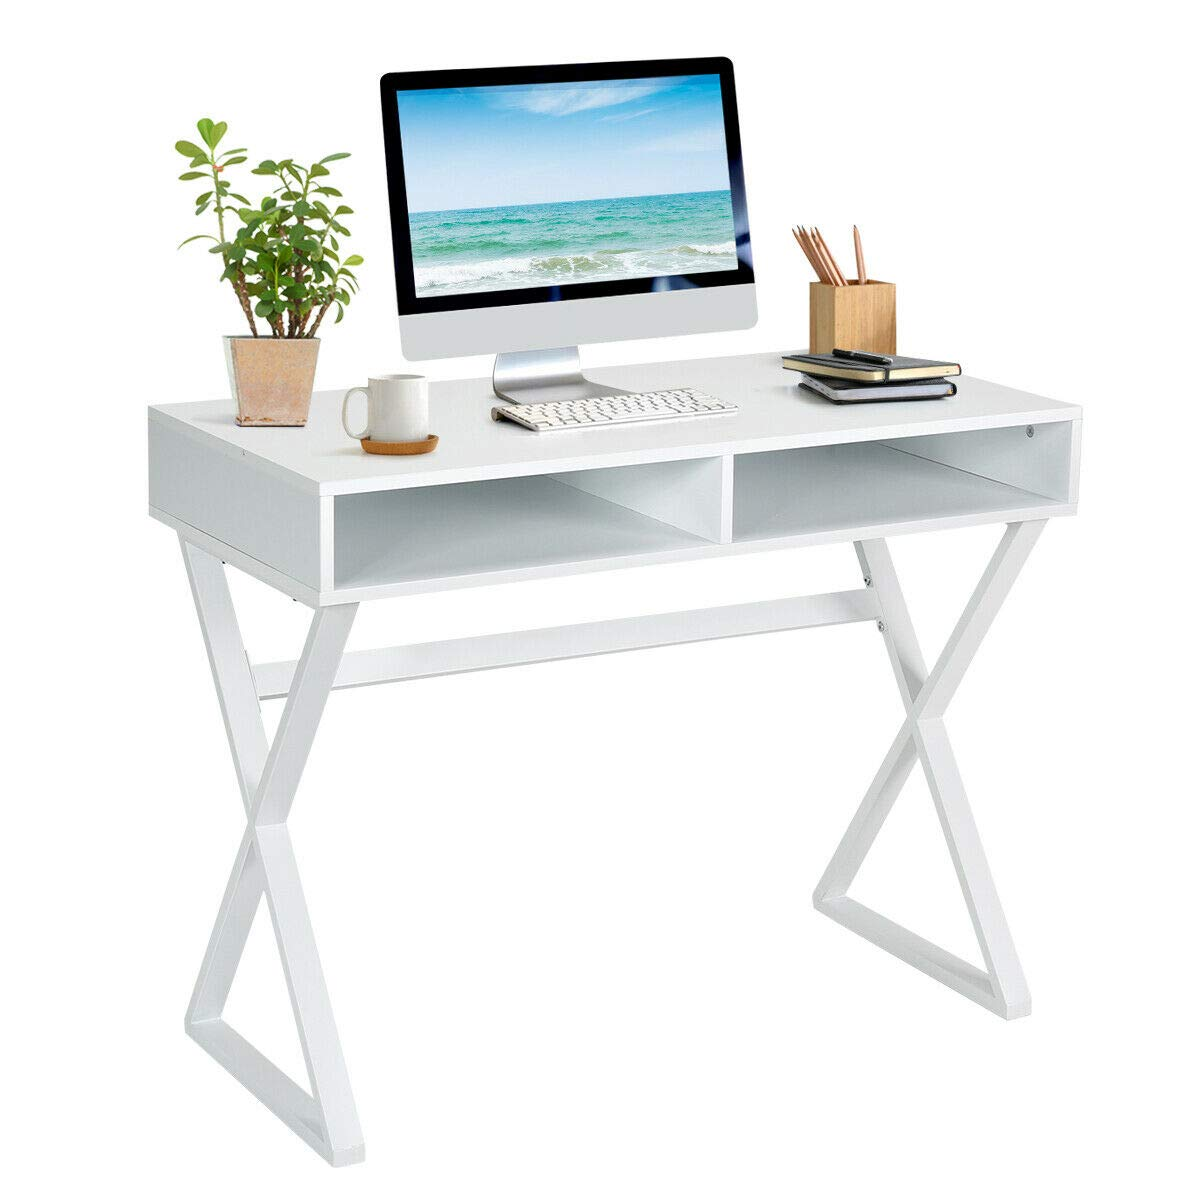 Tangkula Modern Computer Desk, Makeup Vanity Table, Multifunctional Table with 2 Storage Compartments, Writing Desk for Home, Office and Study (White) by Tangkula